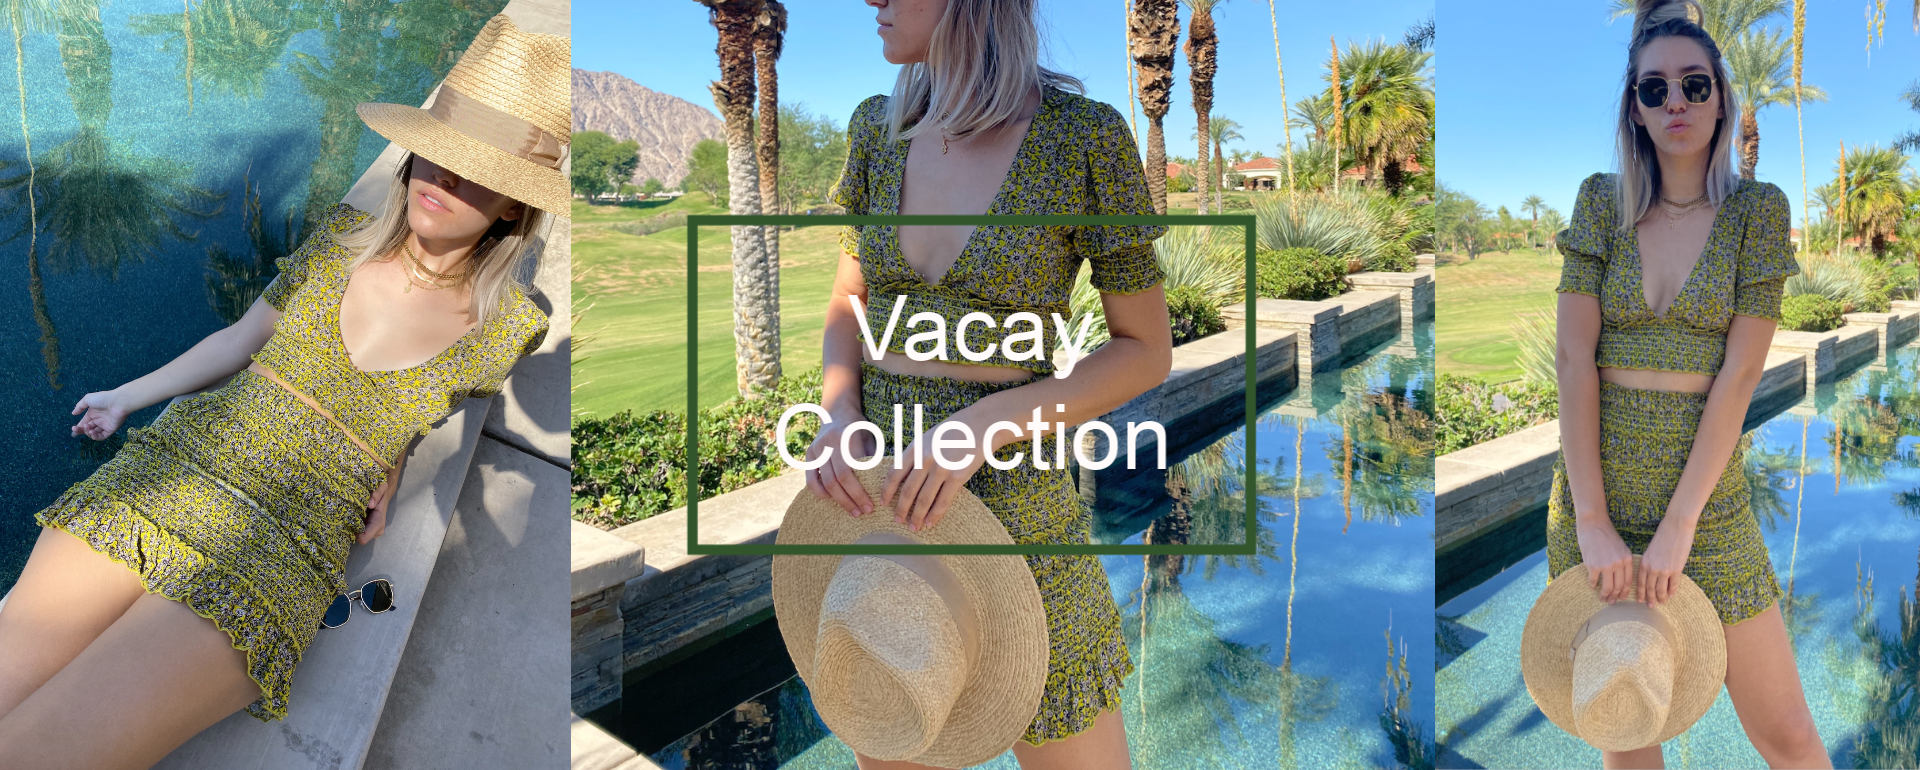 Resort Wear, Spring Break Clothing, Vacation Clothing, Summer Dresses, vacation Dresses, Cute Vacation Clothing, Vacation Jumpsuits, Cover-up Dresses, White Smocked Dresses, Two-Piece Dresses, Trendy Clothes Womens, sundresses, red boho dresses